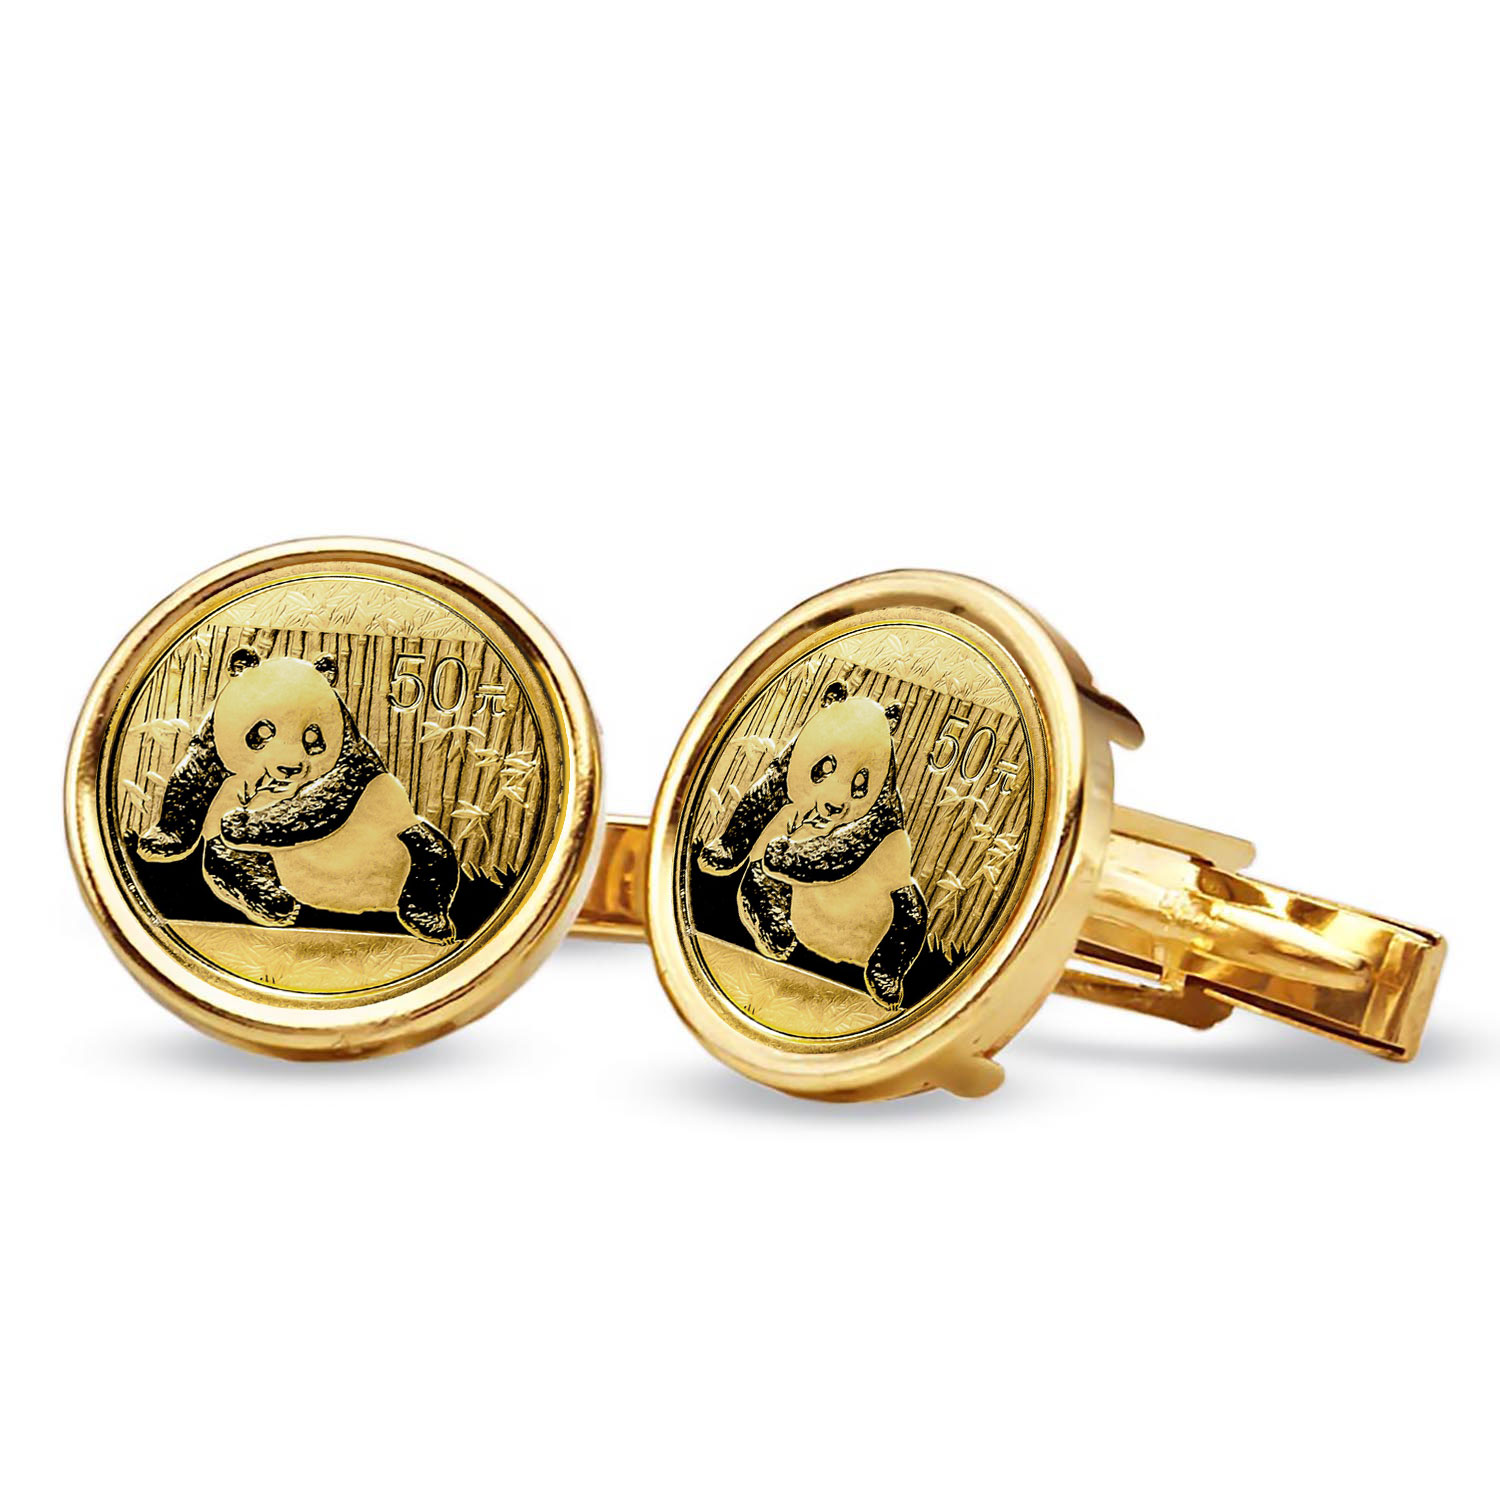 14k Gold Plain Polished Coin Cuff Links - 18mm